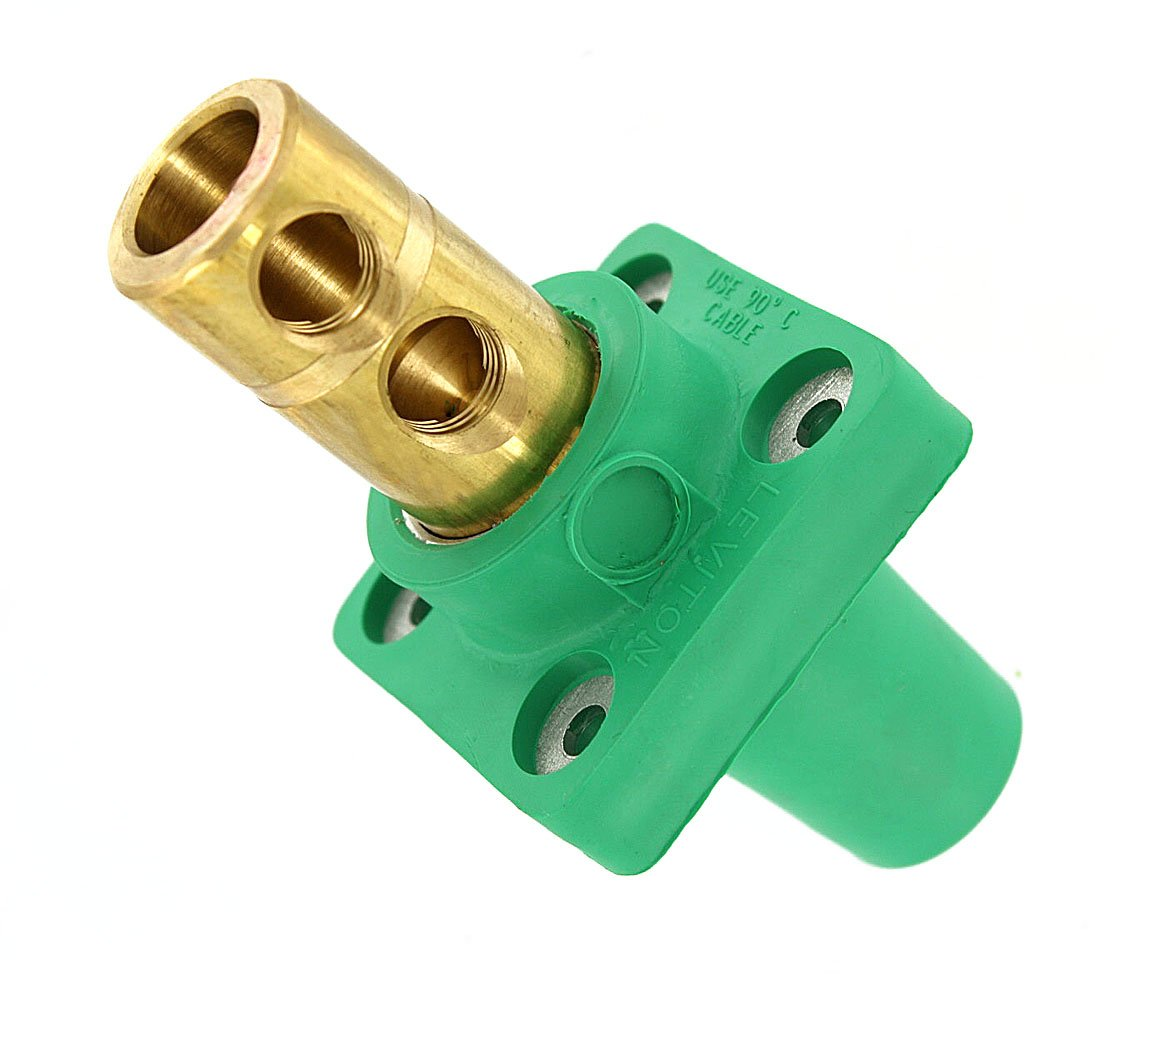 Leviton 16R22-G 16-Series Taper Nose, 90-Degree, Female Panel Receptacle, Cam-Type Connector, Green (Old Model)